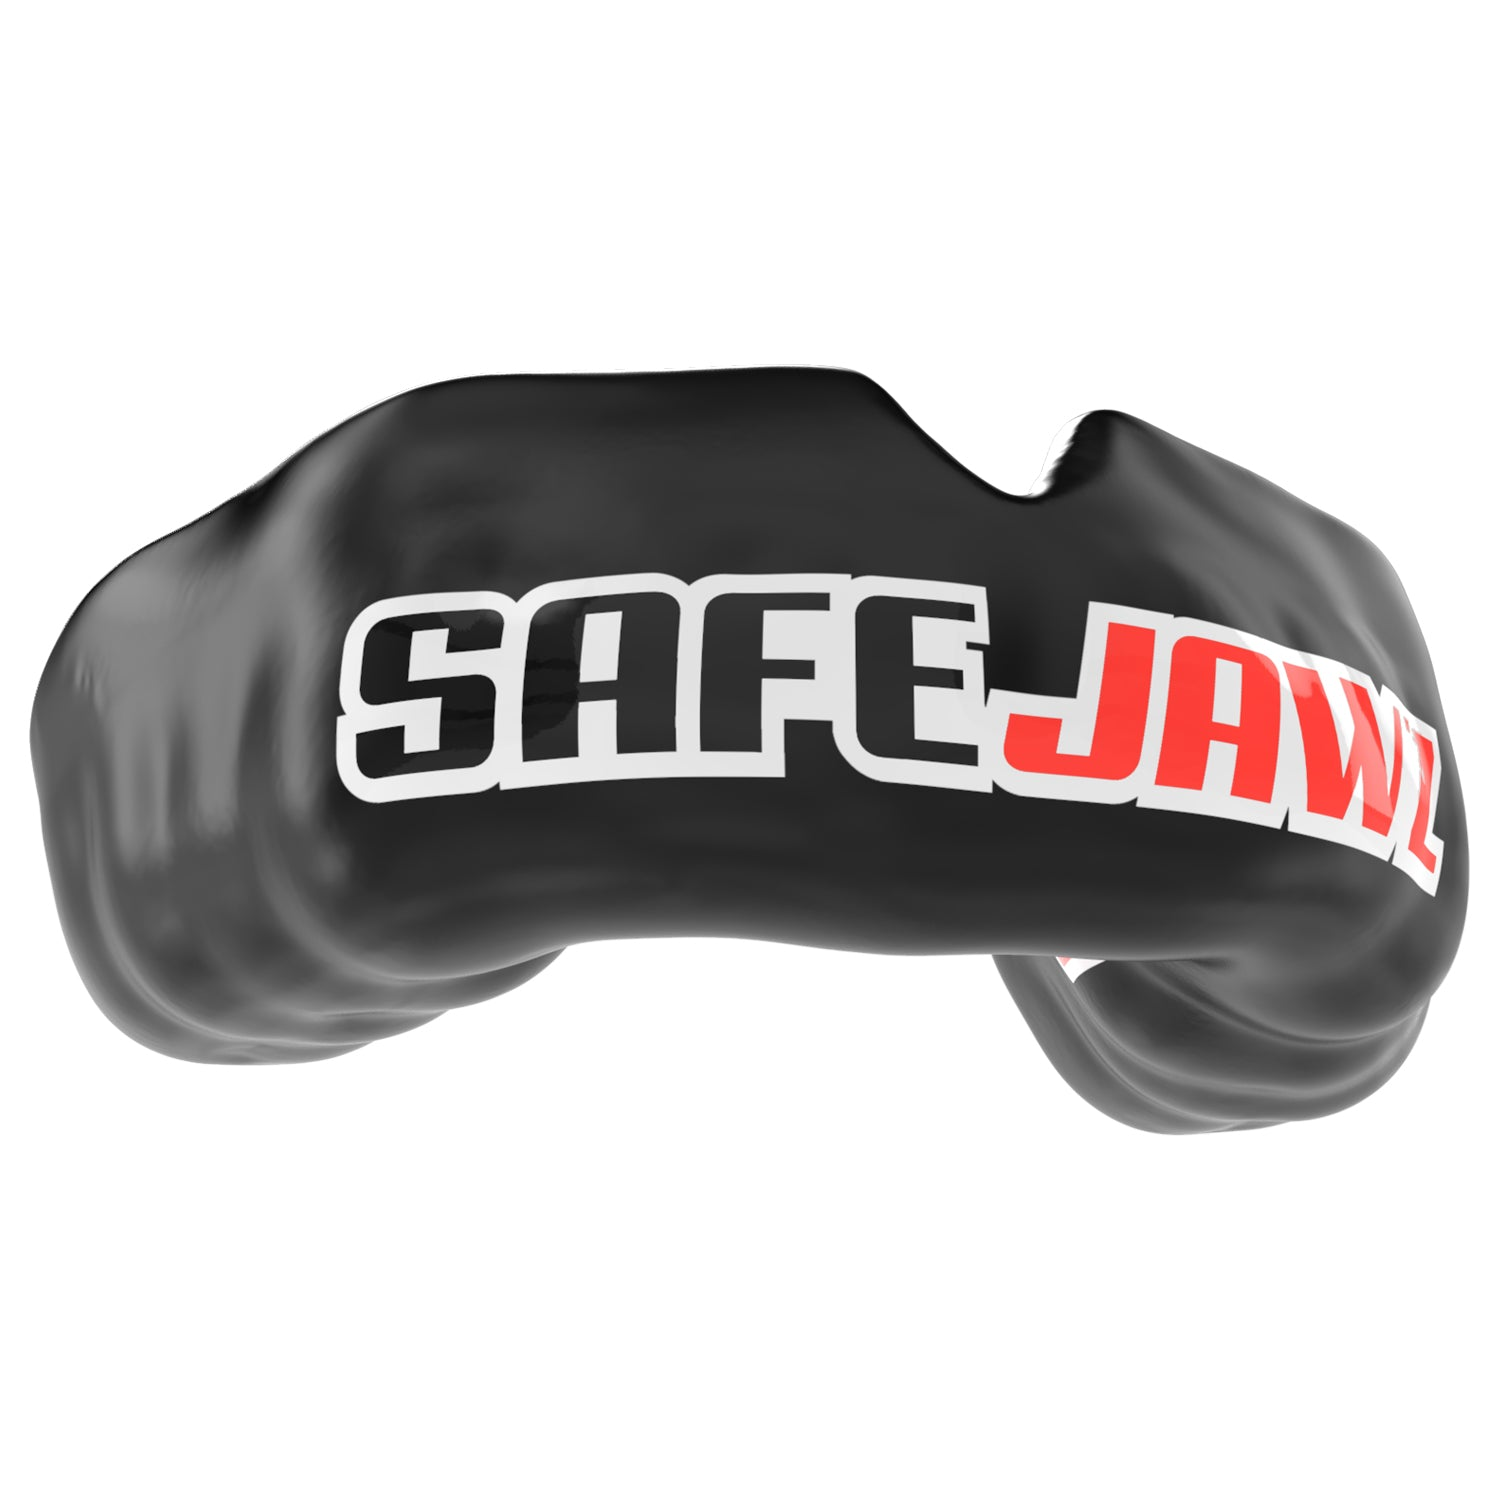 SAFEJAWZ® Popular Design Custom-fit Mouthguard - Black SAFEJAWZ®Logo - SAFEJAWZ gum shield